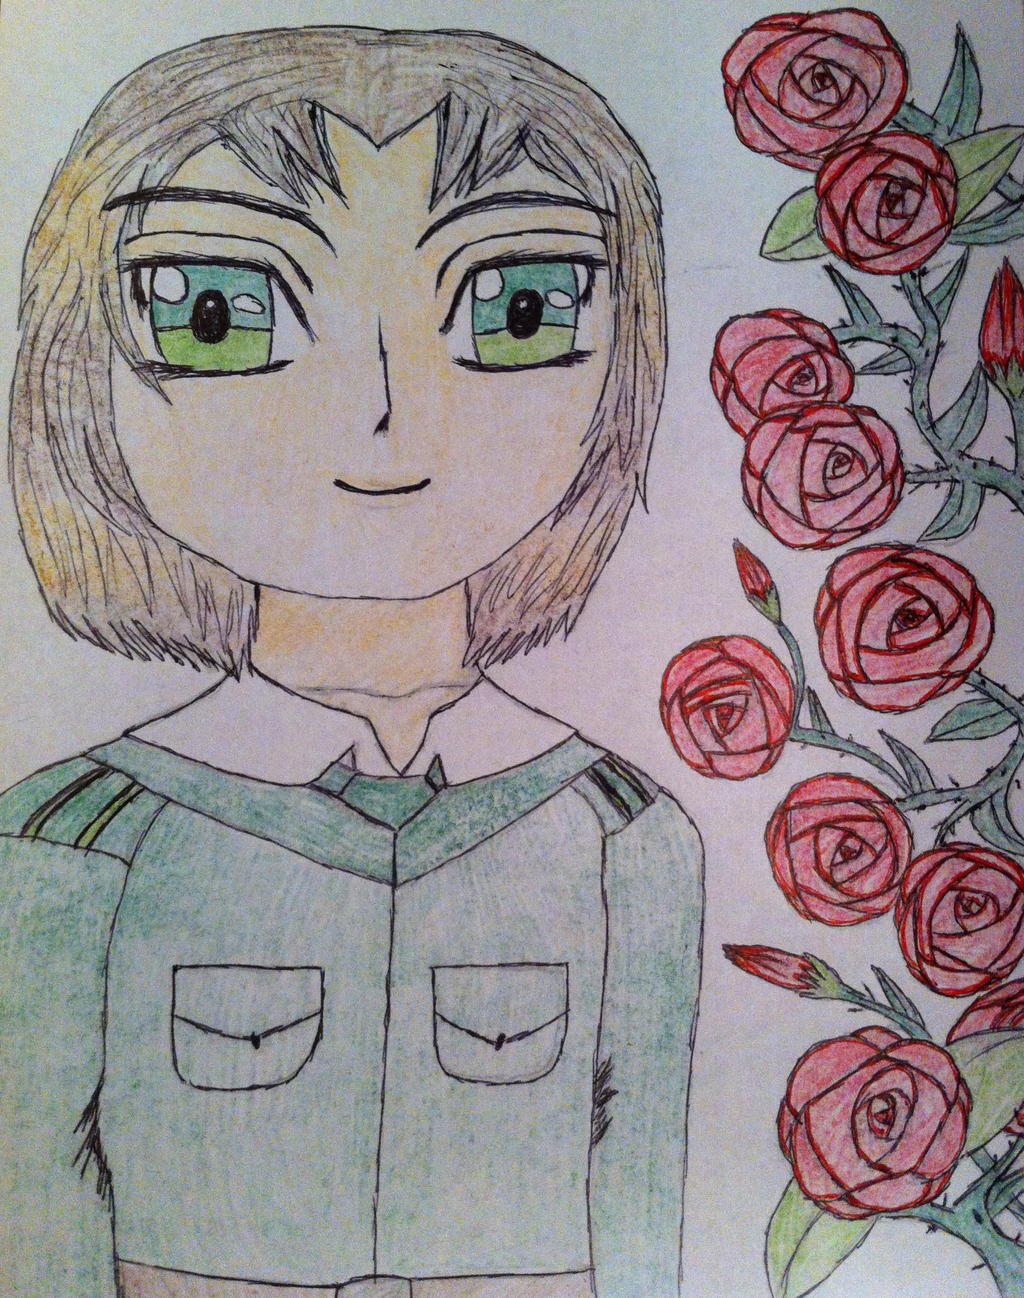 Rose Garden Anime: Hetalia- Lithuania In A Rose Garden By Lovi-My-Chibi